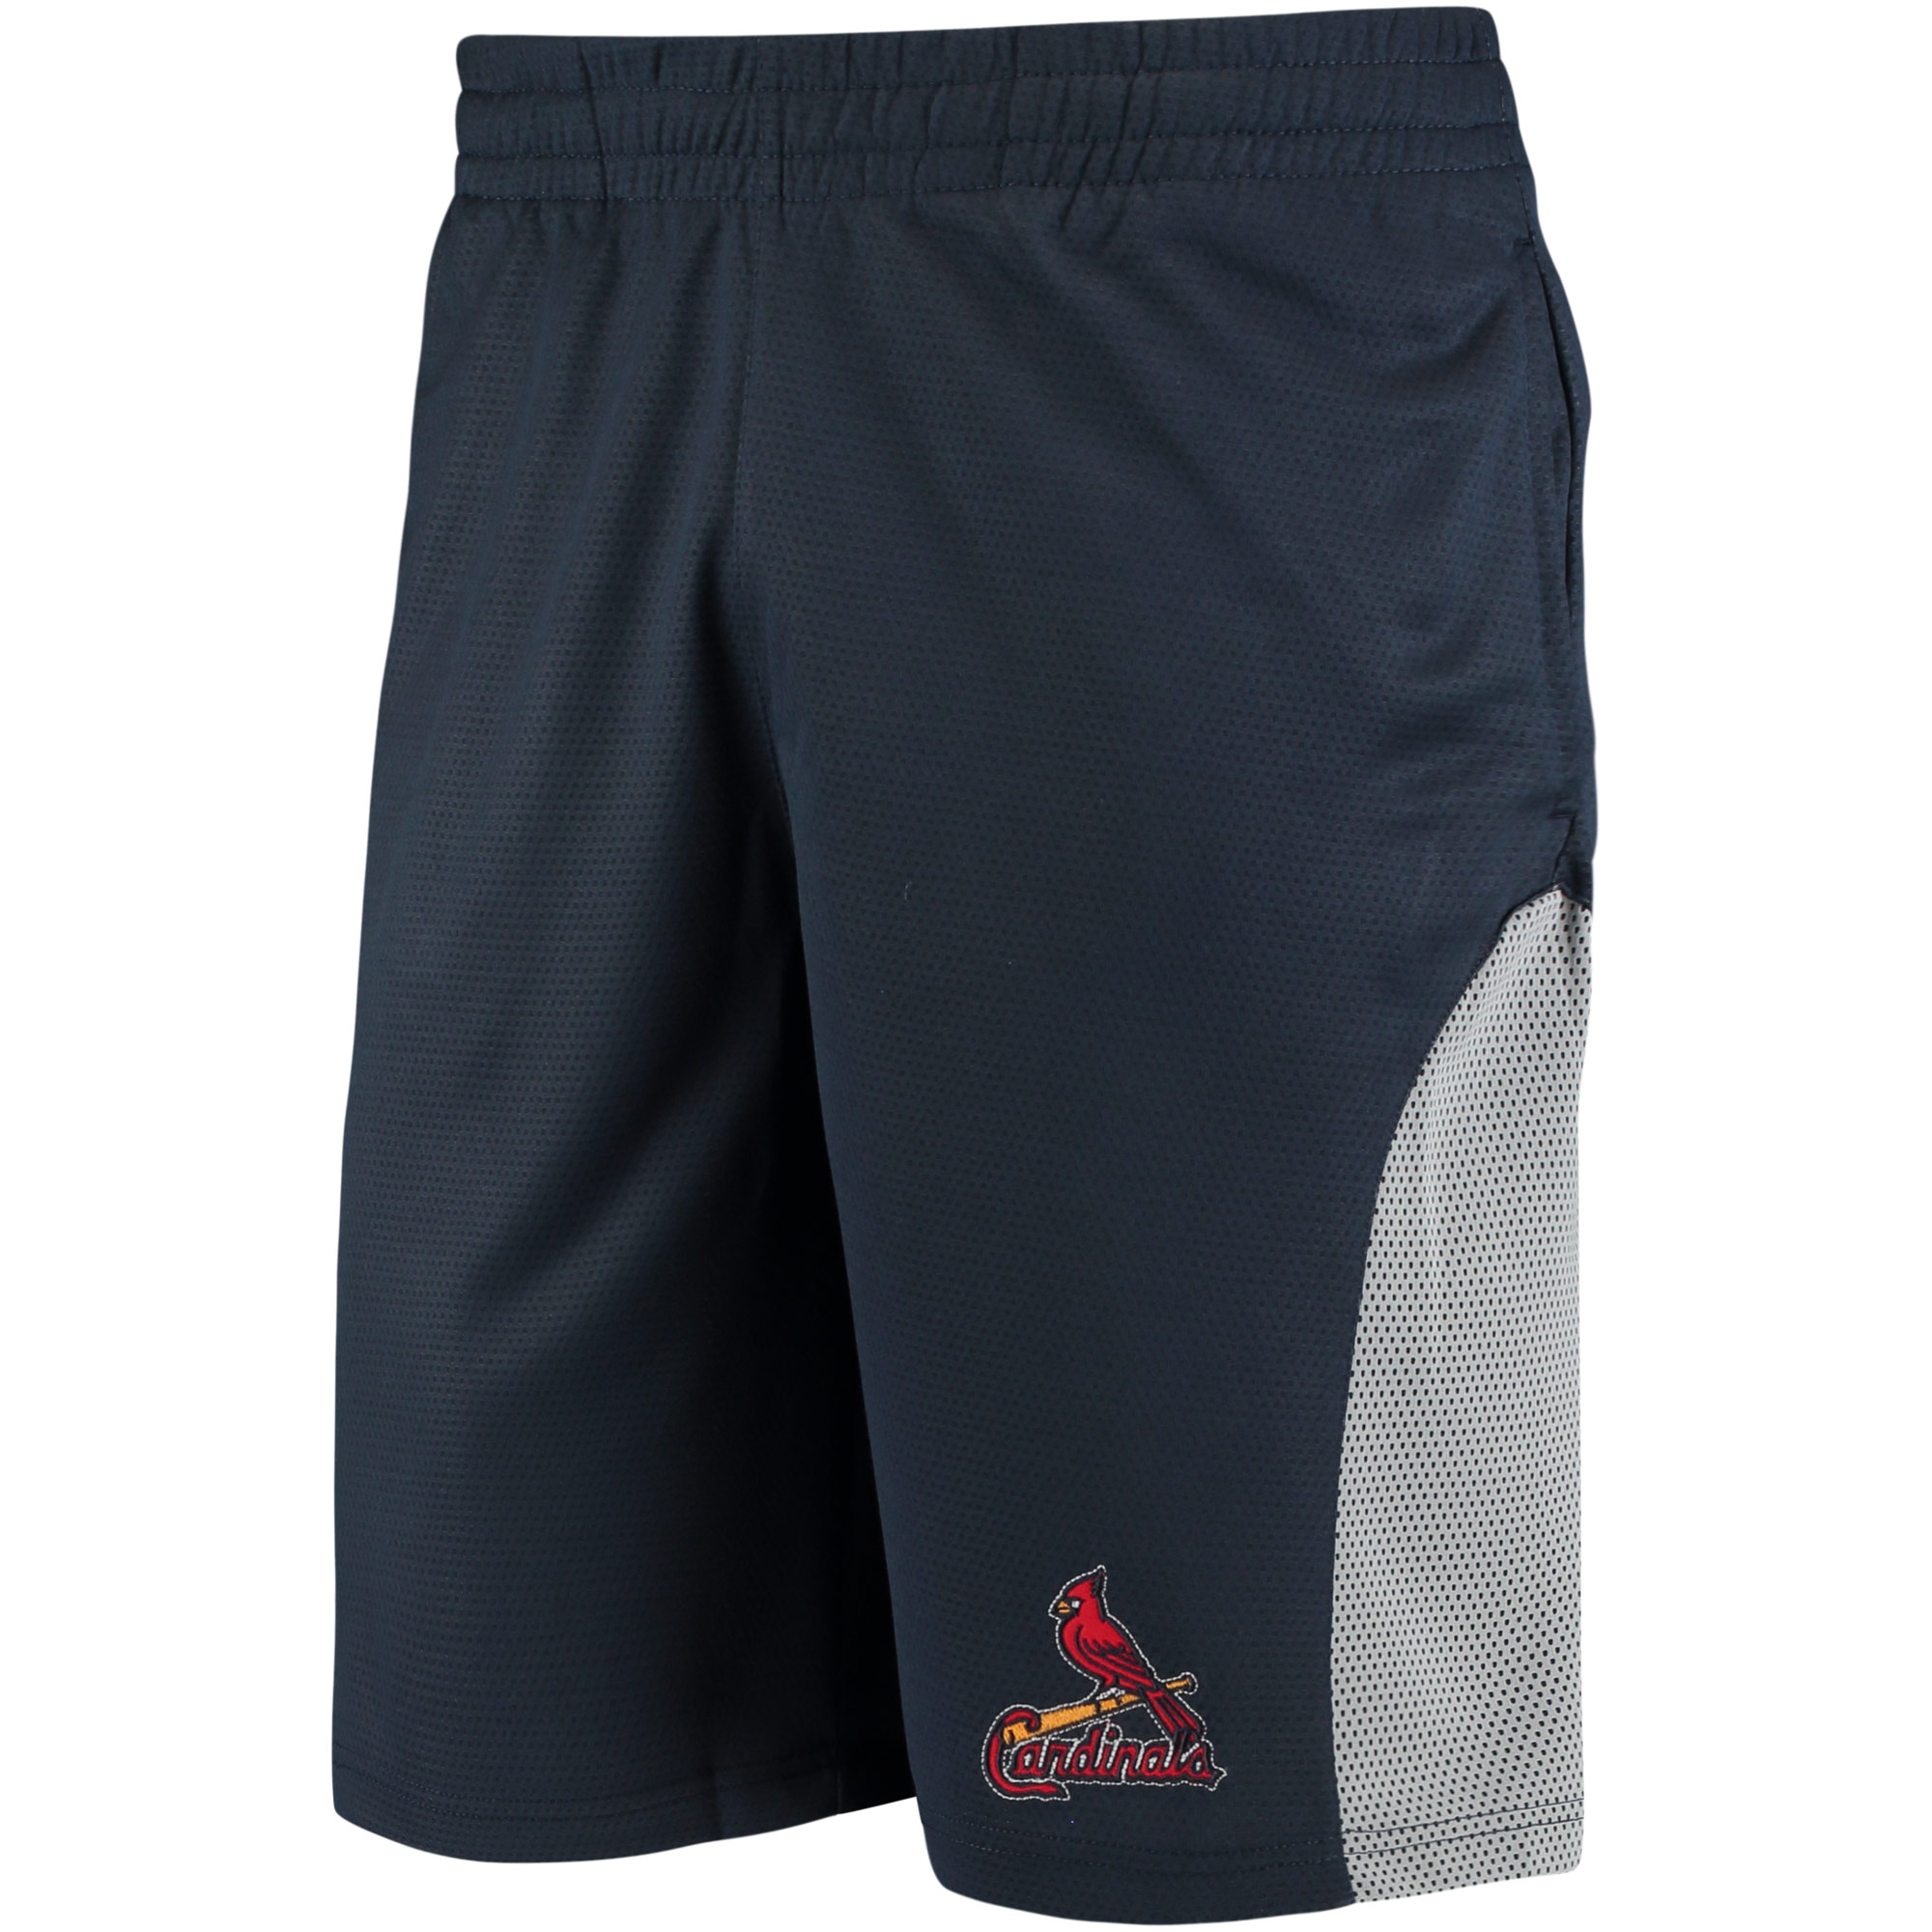 St. Louis Cardinals Stitches Athletic Mesh Shorts - Navy